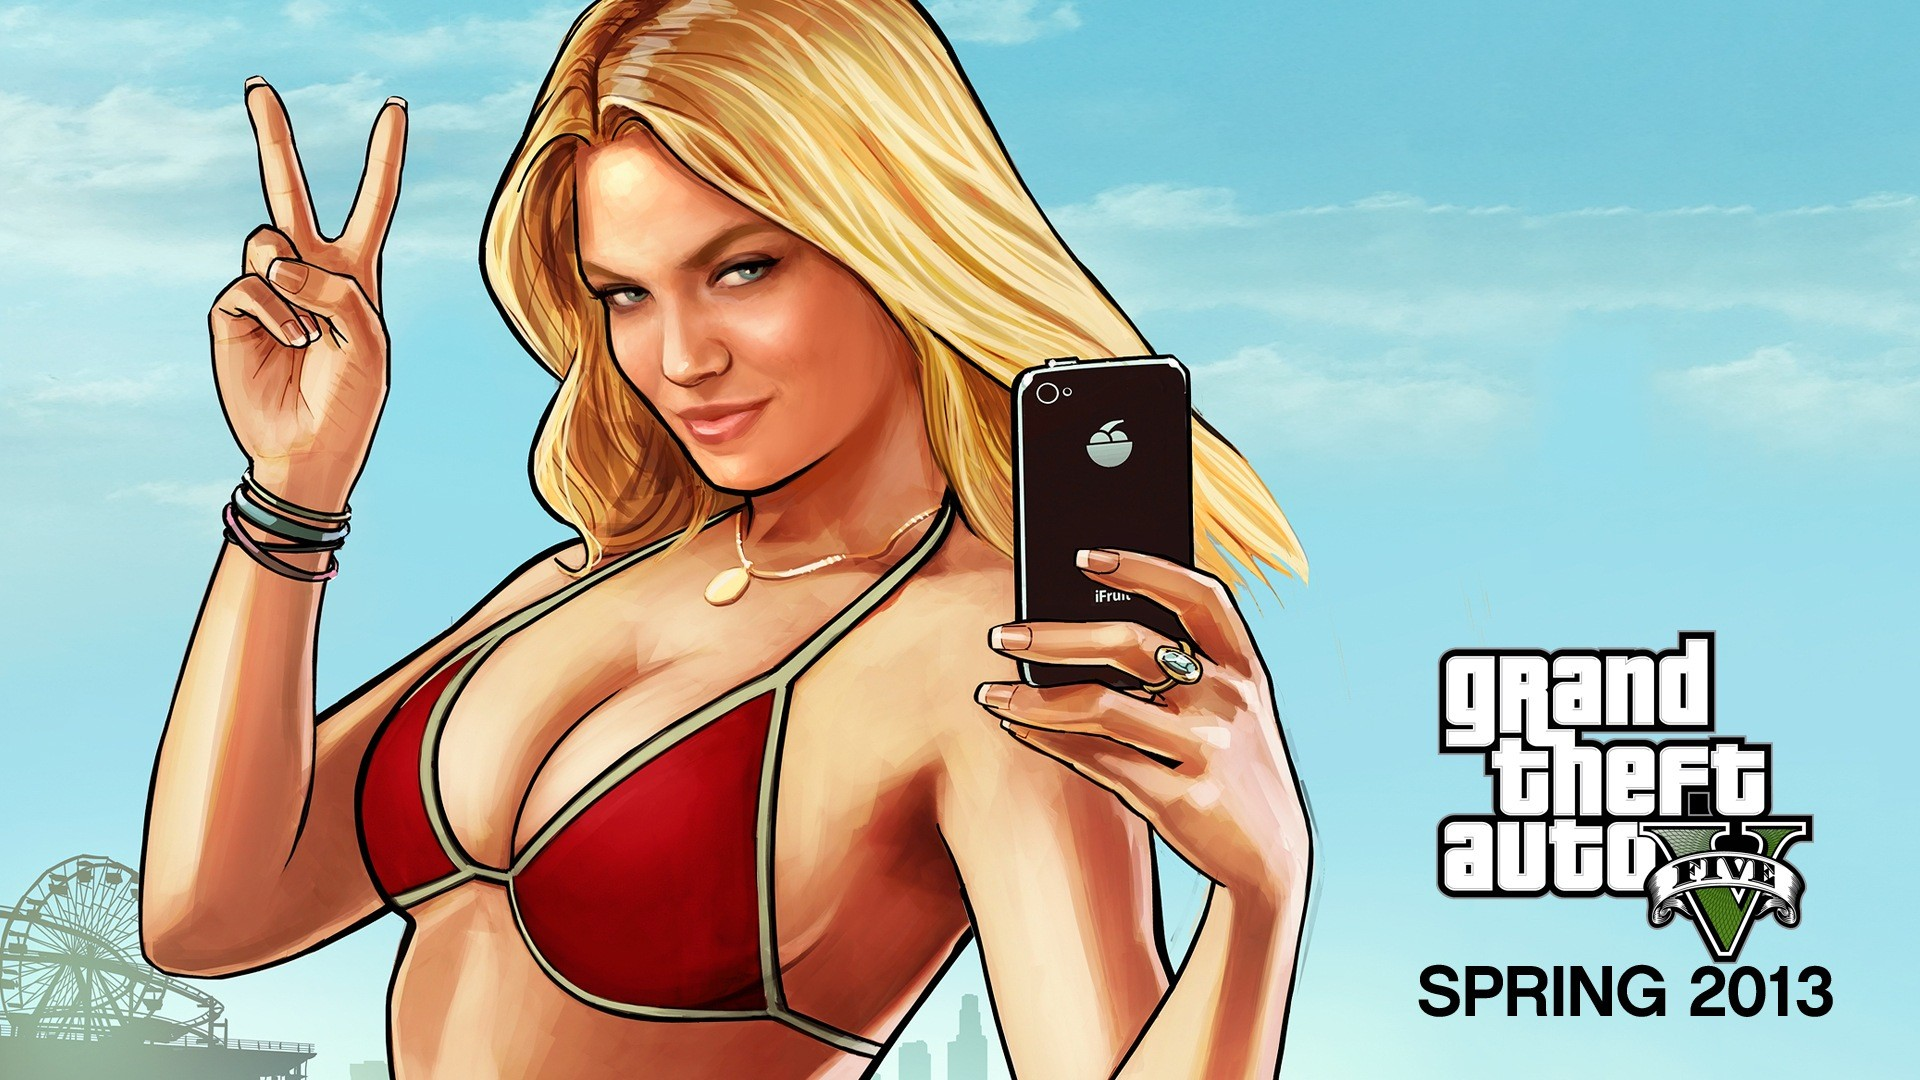 1920x1080 Grand Theft Auto V GTA 5 HD game wallpapers #5 - .